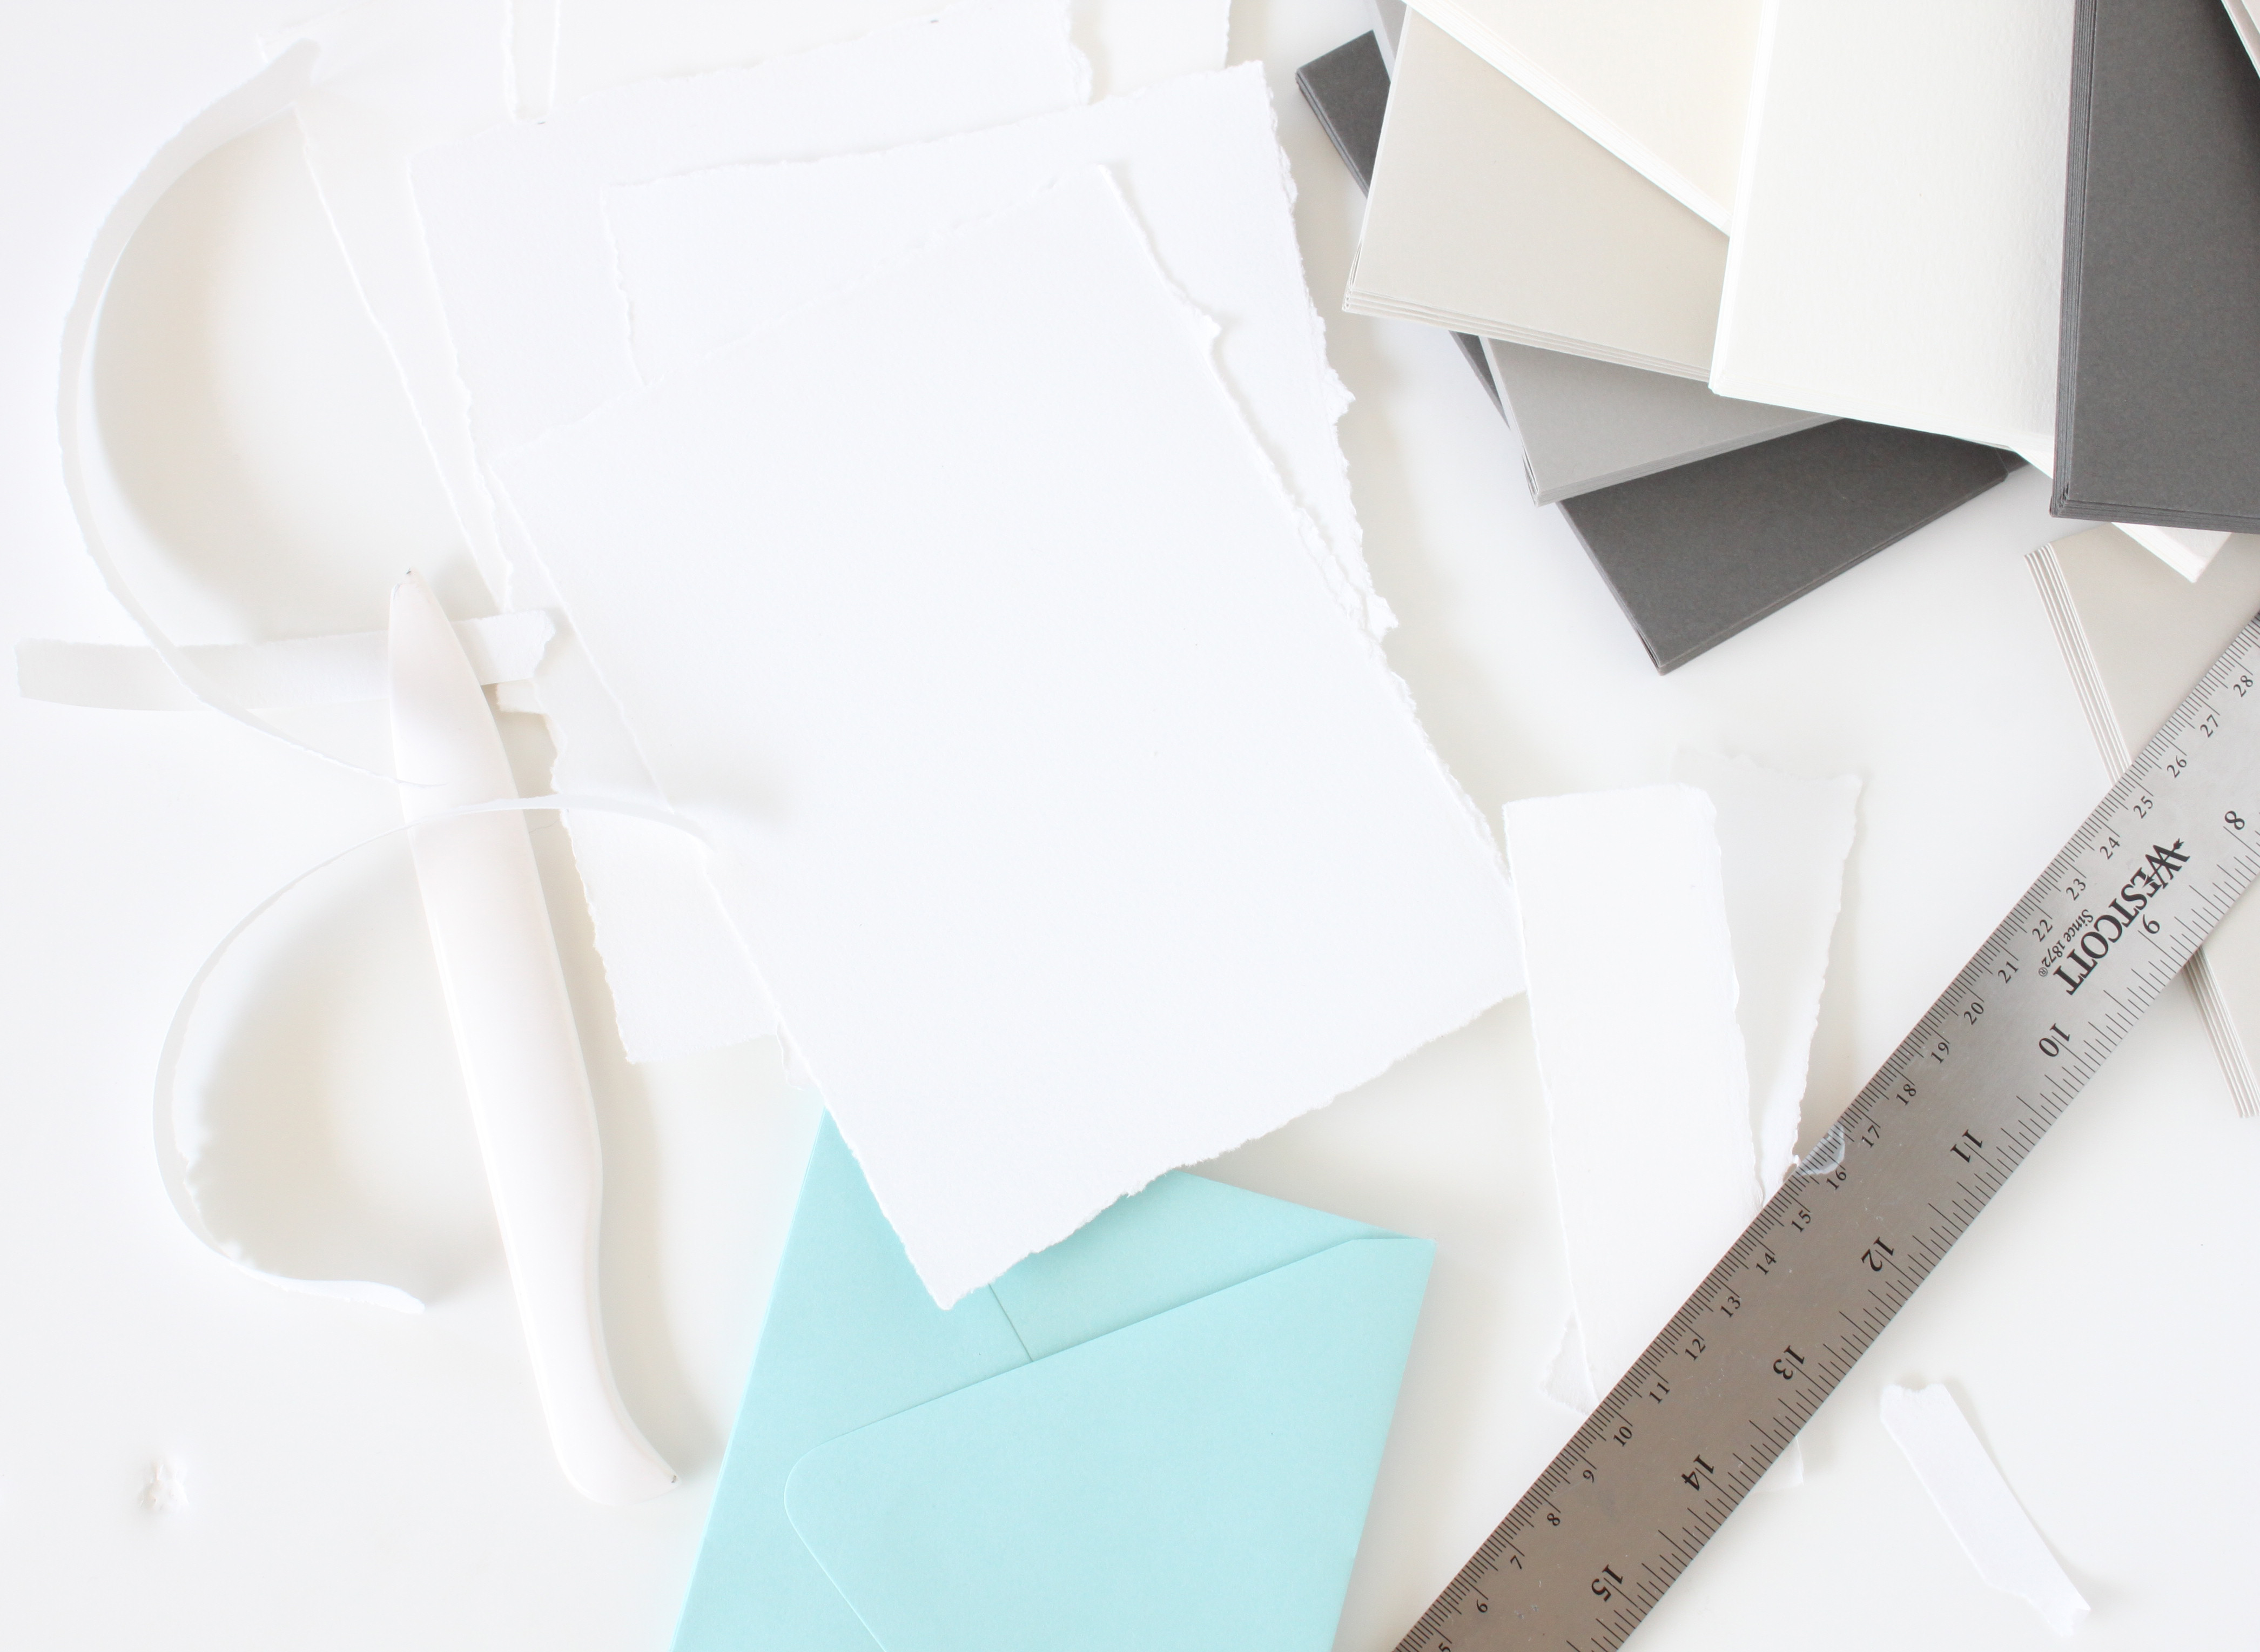 Neutrals | Handmade paper | Envelopes | creative mess via iwonak.com